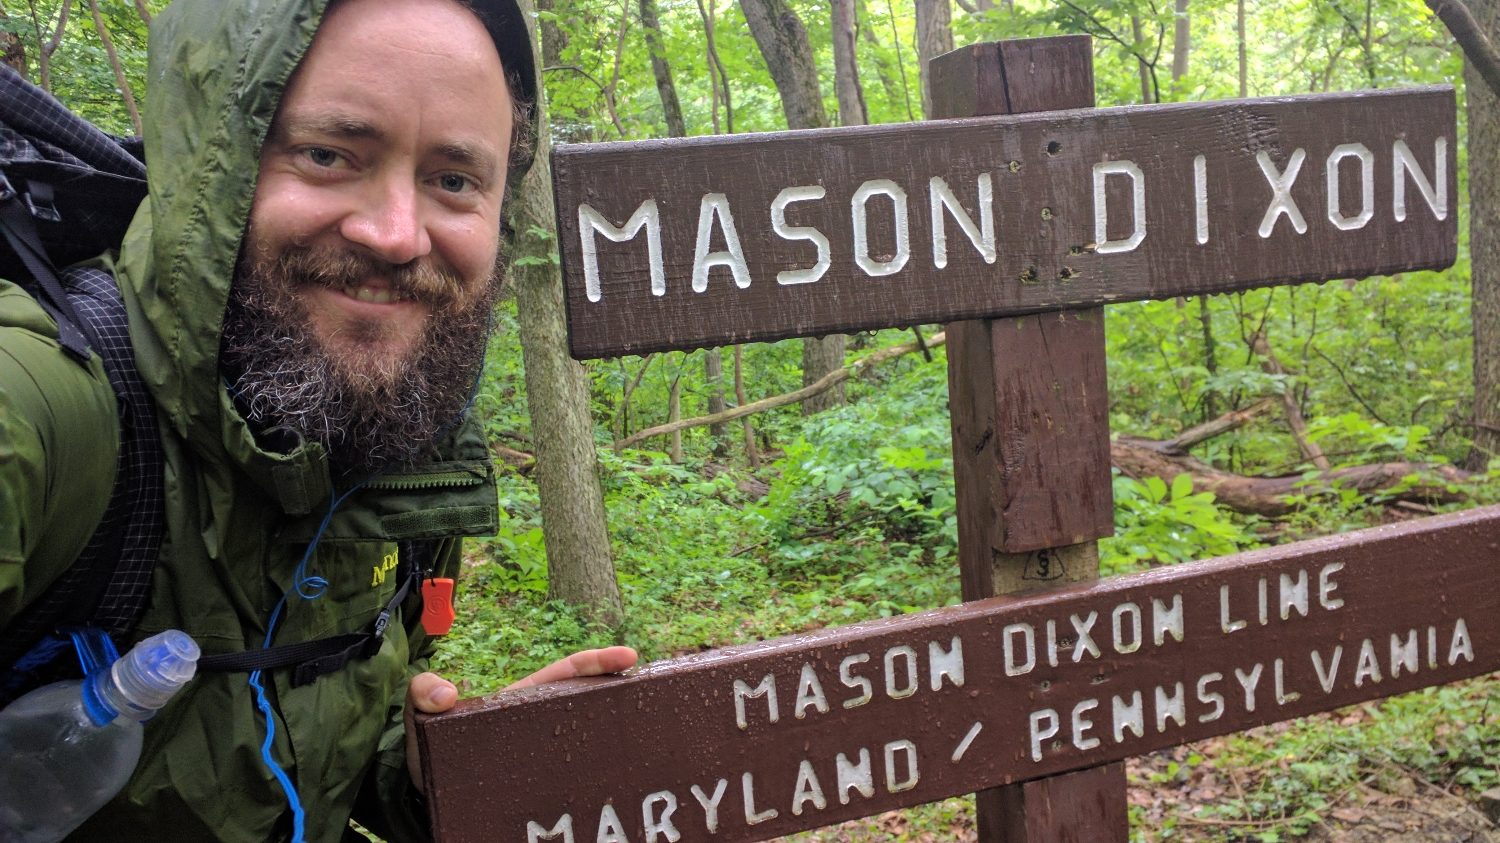 """I've never been north of the Mason Dixon line. """"You guys"""", """"Ayuh"""", """"Chowdah"""", """"Wicked awesome"""", """"NY pizza is real pizza not that pizza casserole crap from the Midwest""""   Am I doing this right?"""